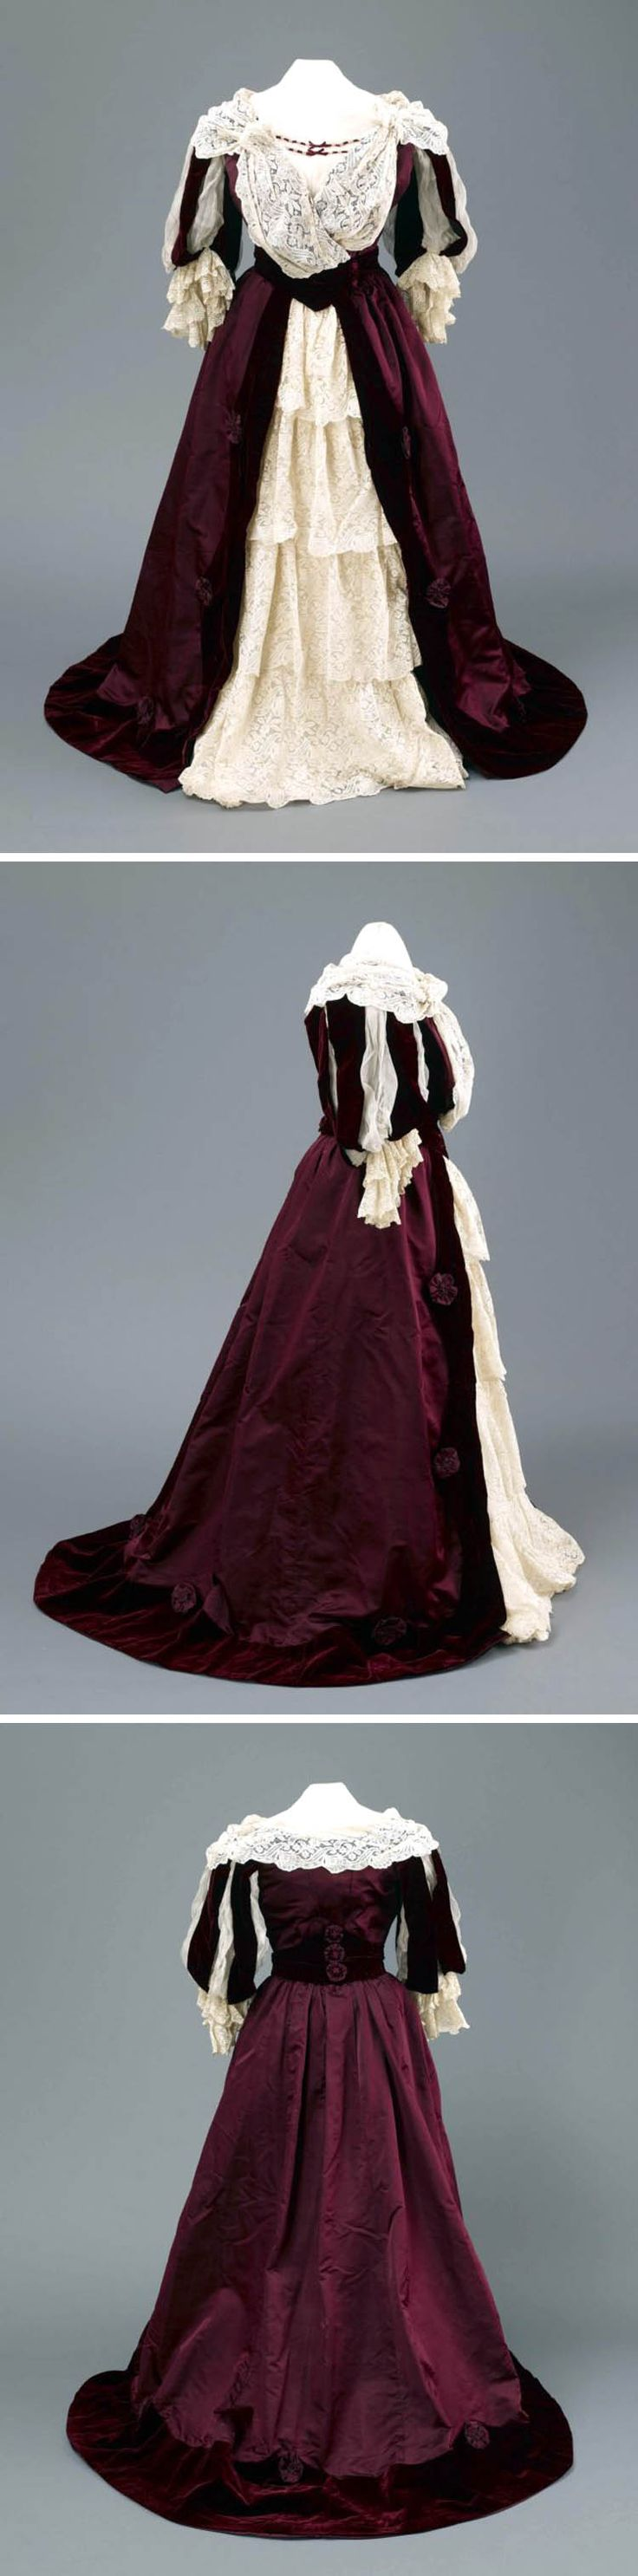 Ballgown, Mme. E. Clapham, 1887. Bodice & skirt of maroon satin decorated with cream lace. Hull Museums via mylearning.org